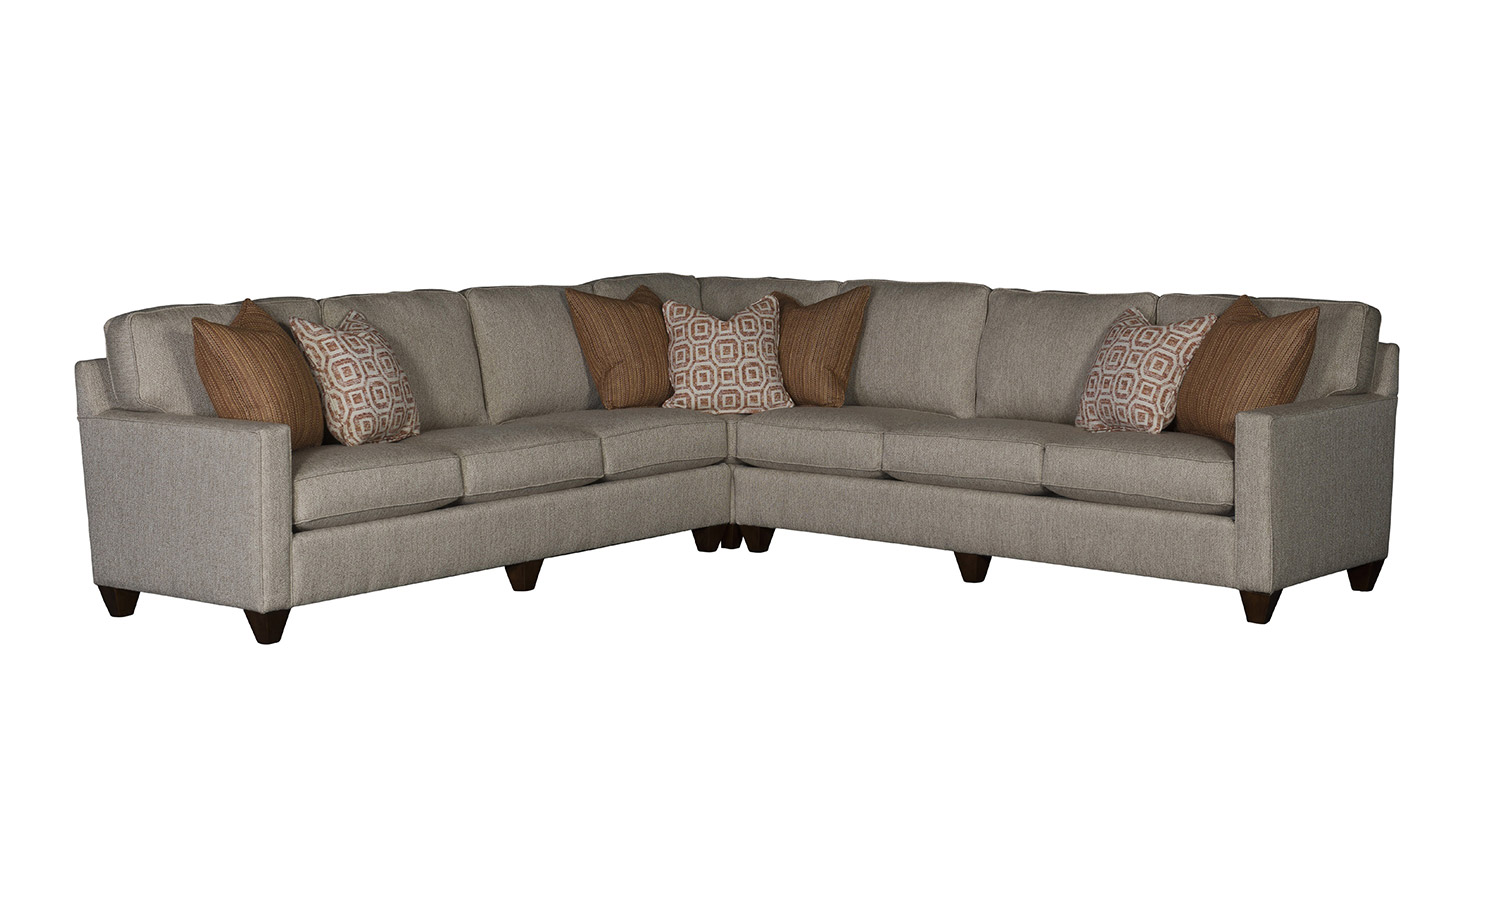 Chelsea Home Sutton Sectional Sofa - Grey